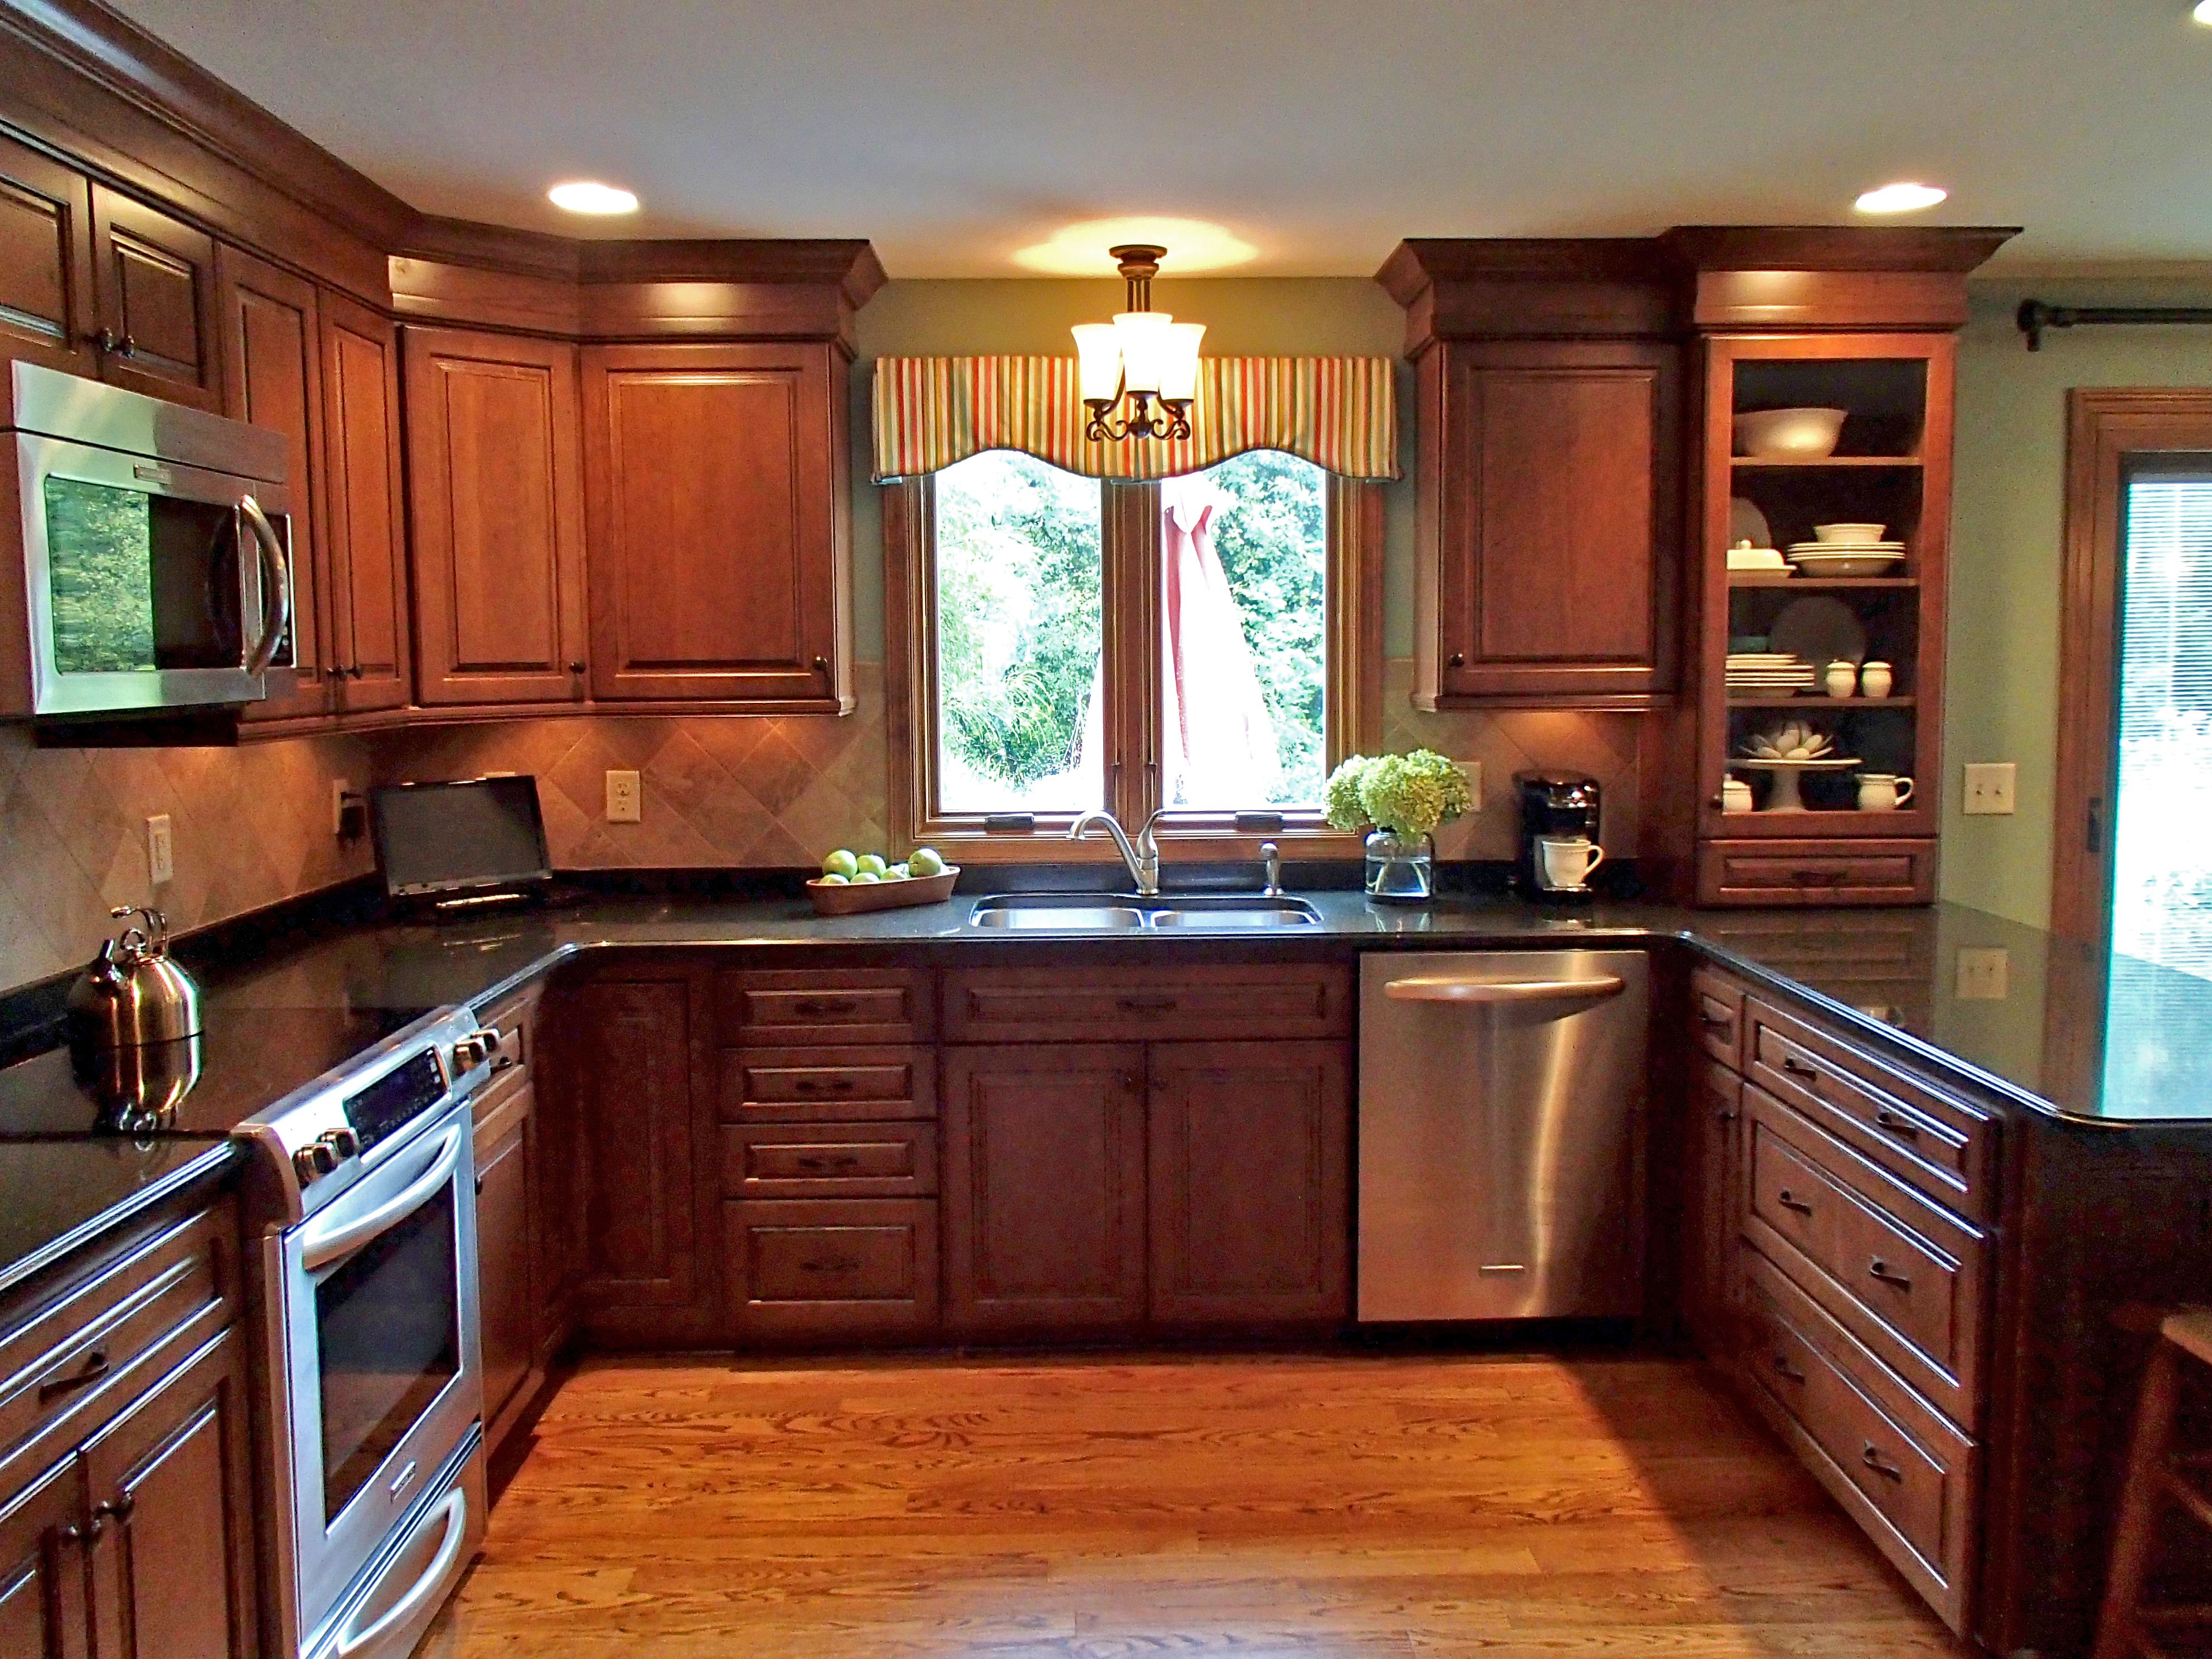 Kitchen Remodel Buffalo Ny Home Remodeling Contractors Kitchen Remodel Images Simple Kitchen Remodel